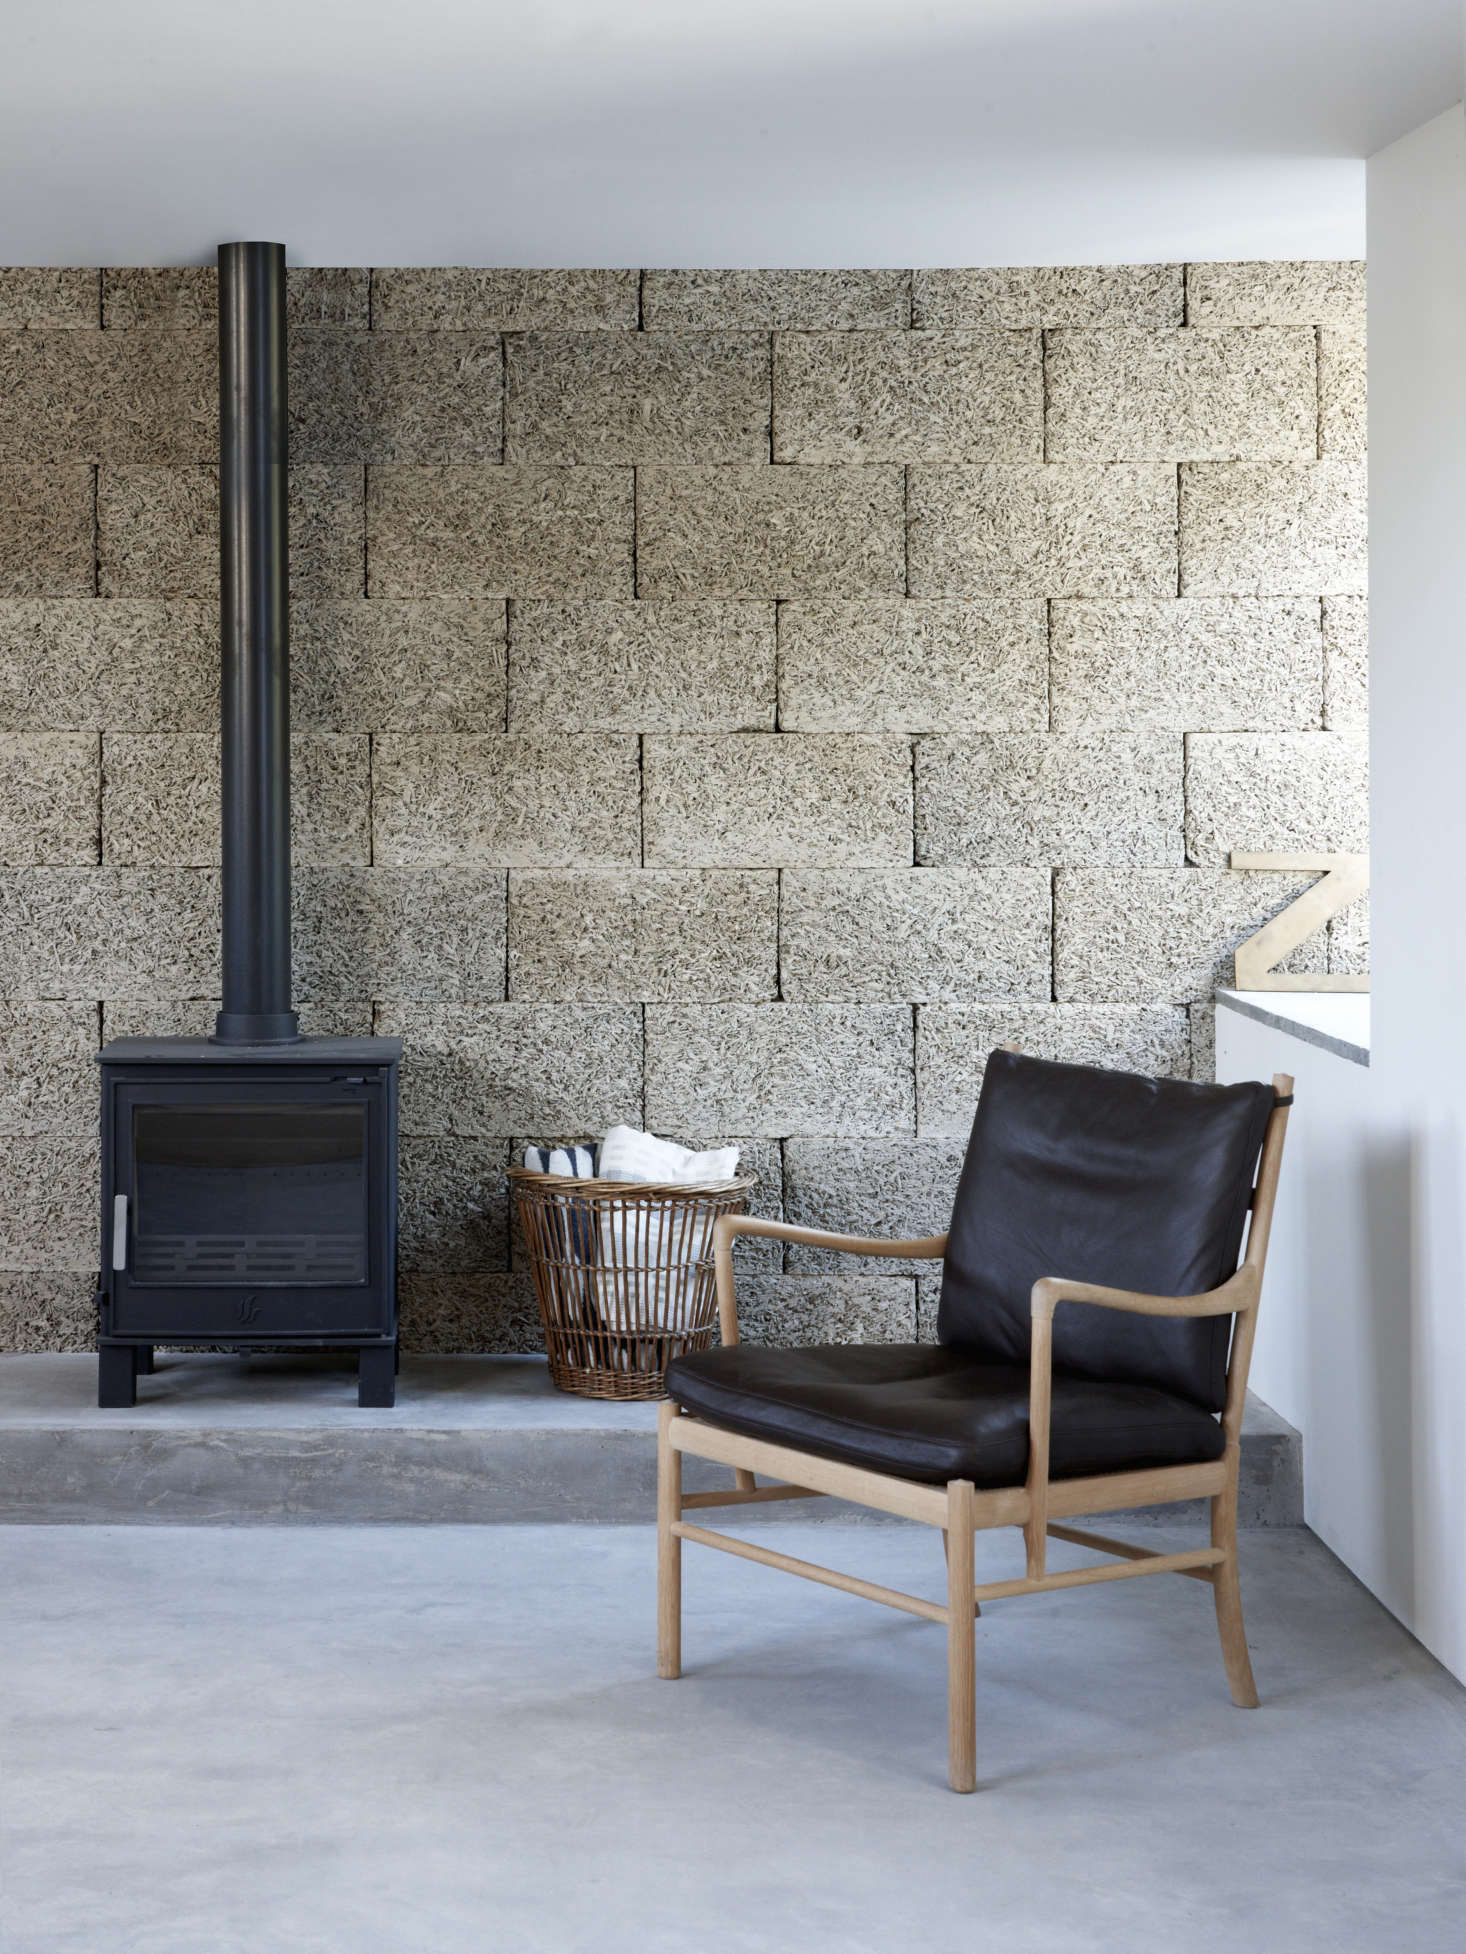 Textural wood wool blocks form the living room back wallandlend an intimacy to the space. (Also known as excelsior, these compressed strands of wood bonded with cement are traditionally used among other things as insulation.) The armchair is Ole Wanscher's 1949 149 Colonial Chair by Carl Hansen. For willow baskets similar tothis one, see Object Lessons: Almighty Wicker Basket.